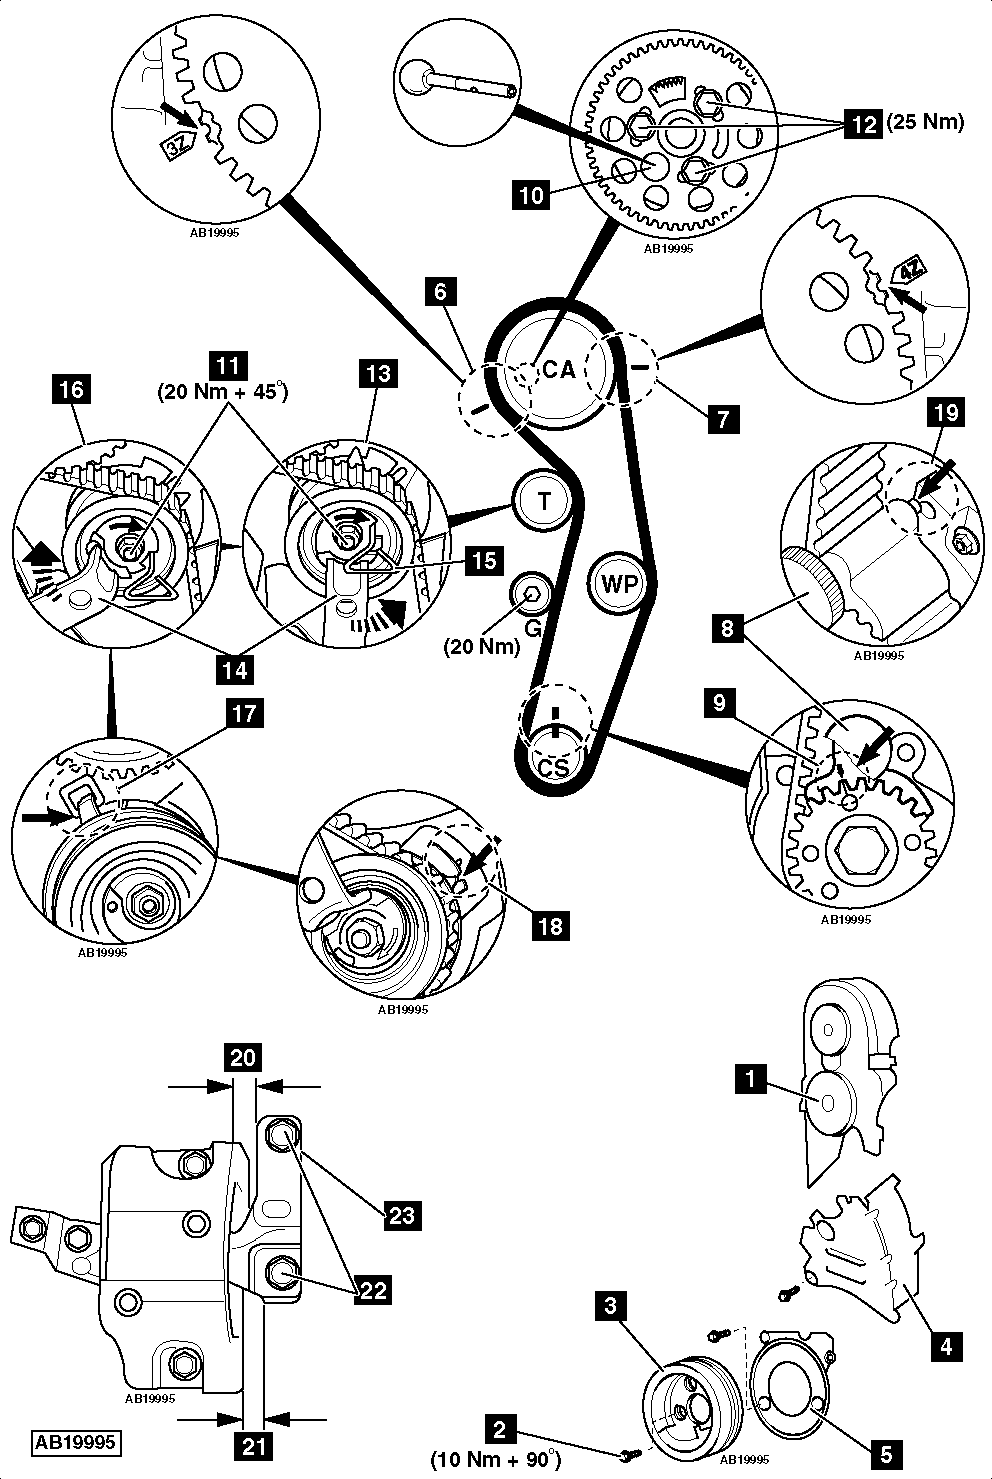 19 Tdi Engine Diagram Wiring Library Vw Door How To Replace Timing Belt On Golf 4 And 4motion